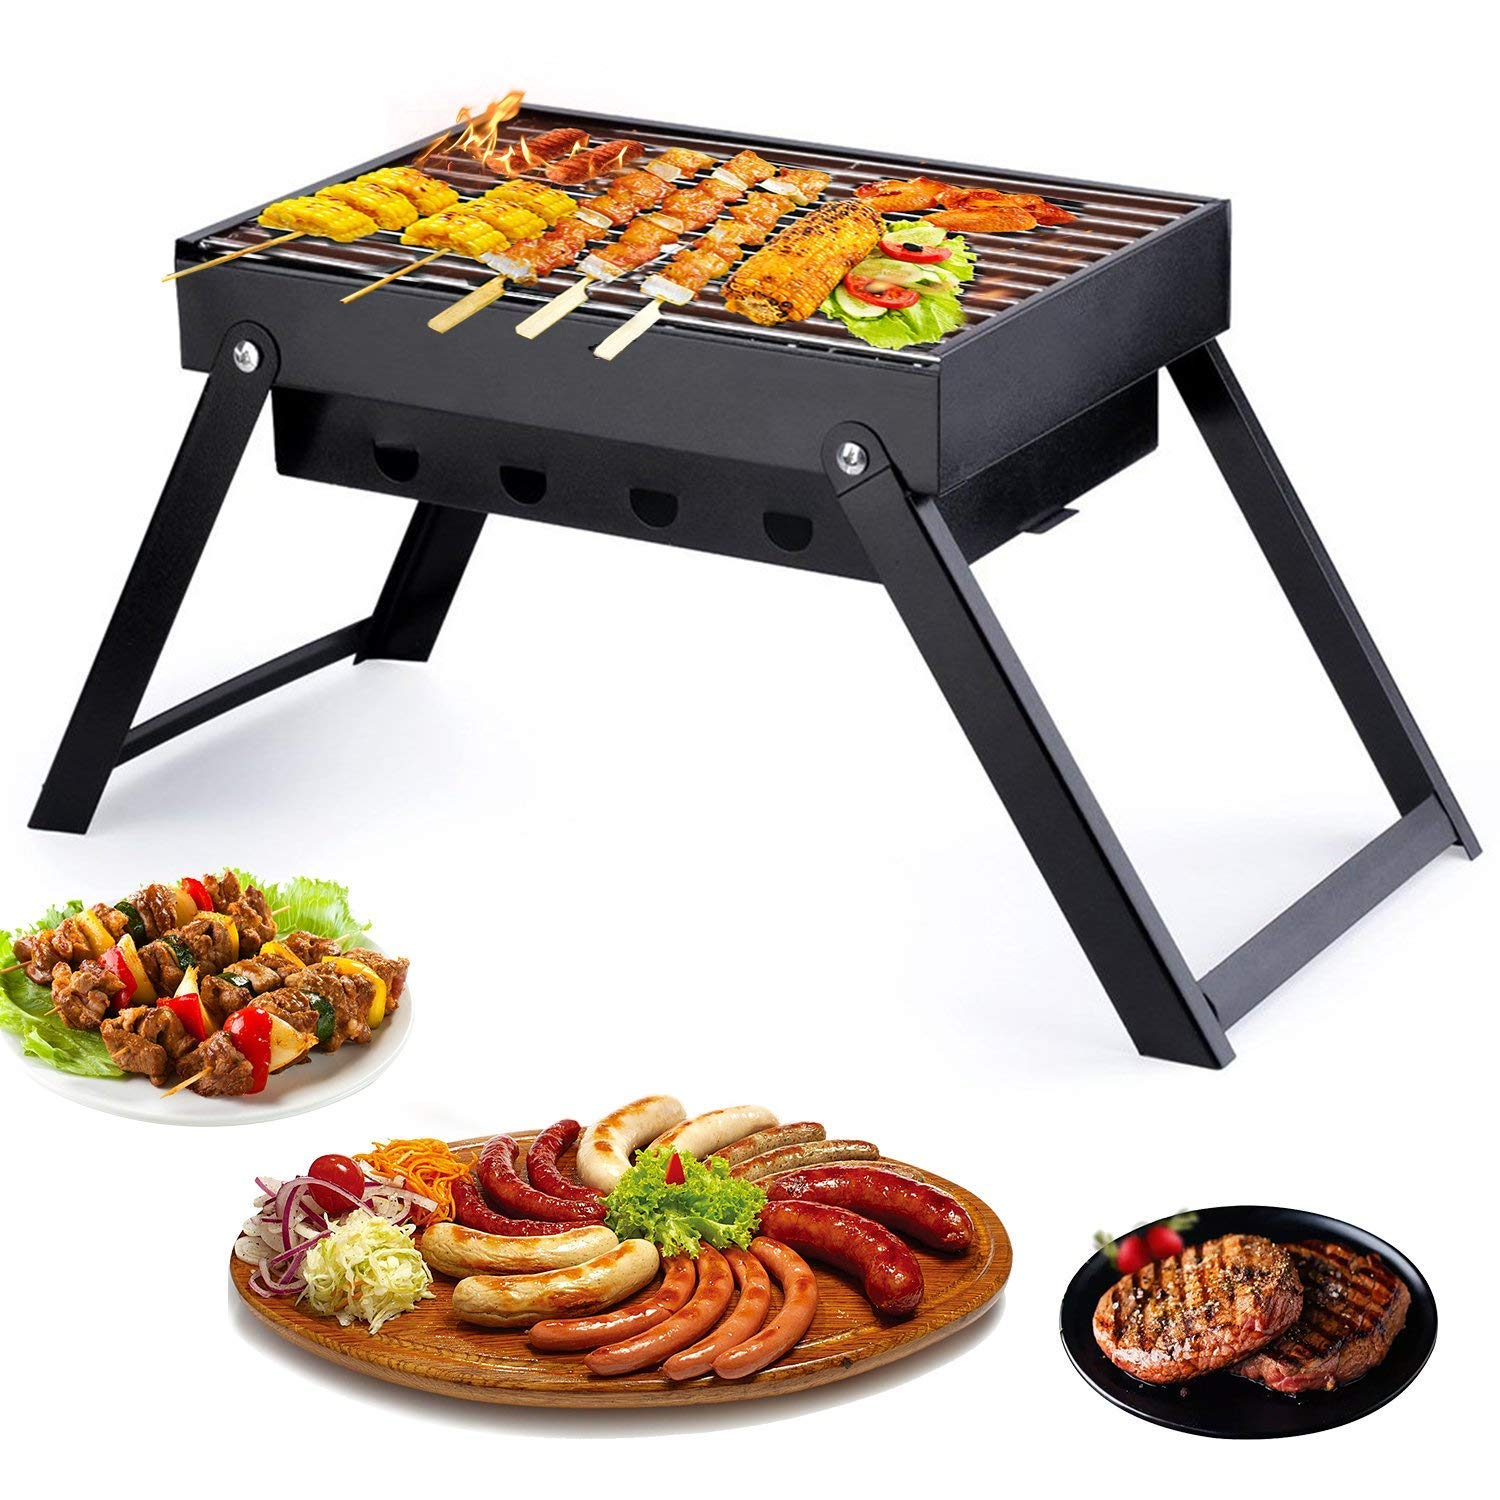 Burrby Portable BBQ Grill, Foldable Stainles Charcoal Barbecue Table Camping Outdoor Garden Grill BBQ Utensil(3 pounds)